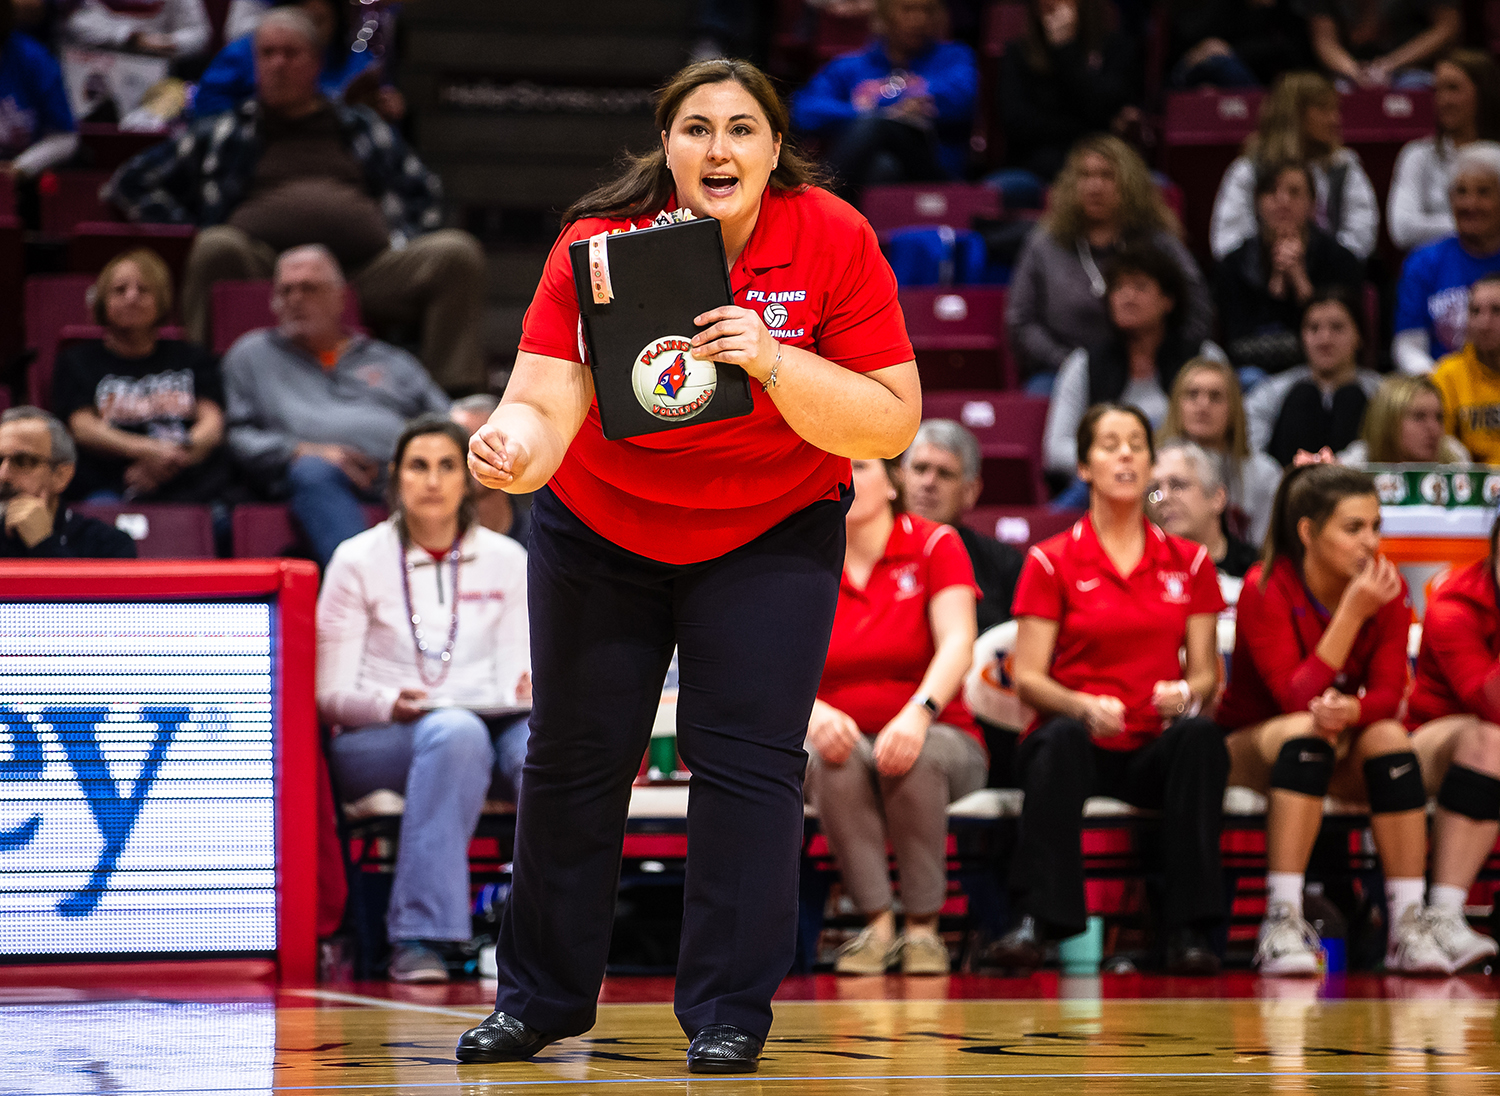 Pleasant Plains volleyball head coach Denise Dufour calls out instructions as the Cardinals take on Champaign St. Thomas More on match point in the third set during the Class 2A IHSA Volleyball State Final Tournament semifinals at Redbird Arena, Friday, Nov. 9, 2018, in Normal, Ill. [Justin L. Fowler/The State Journal-Register]